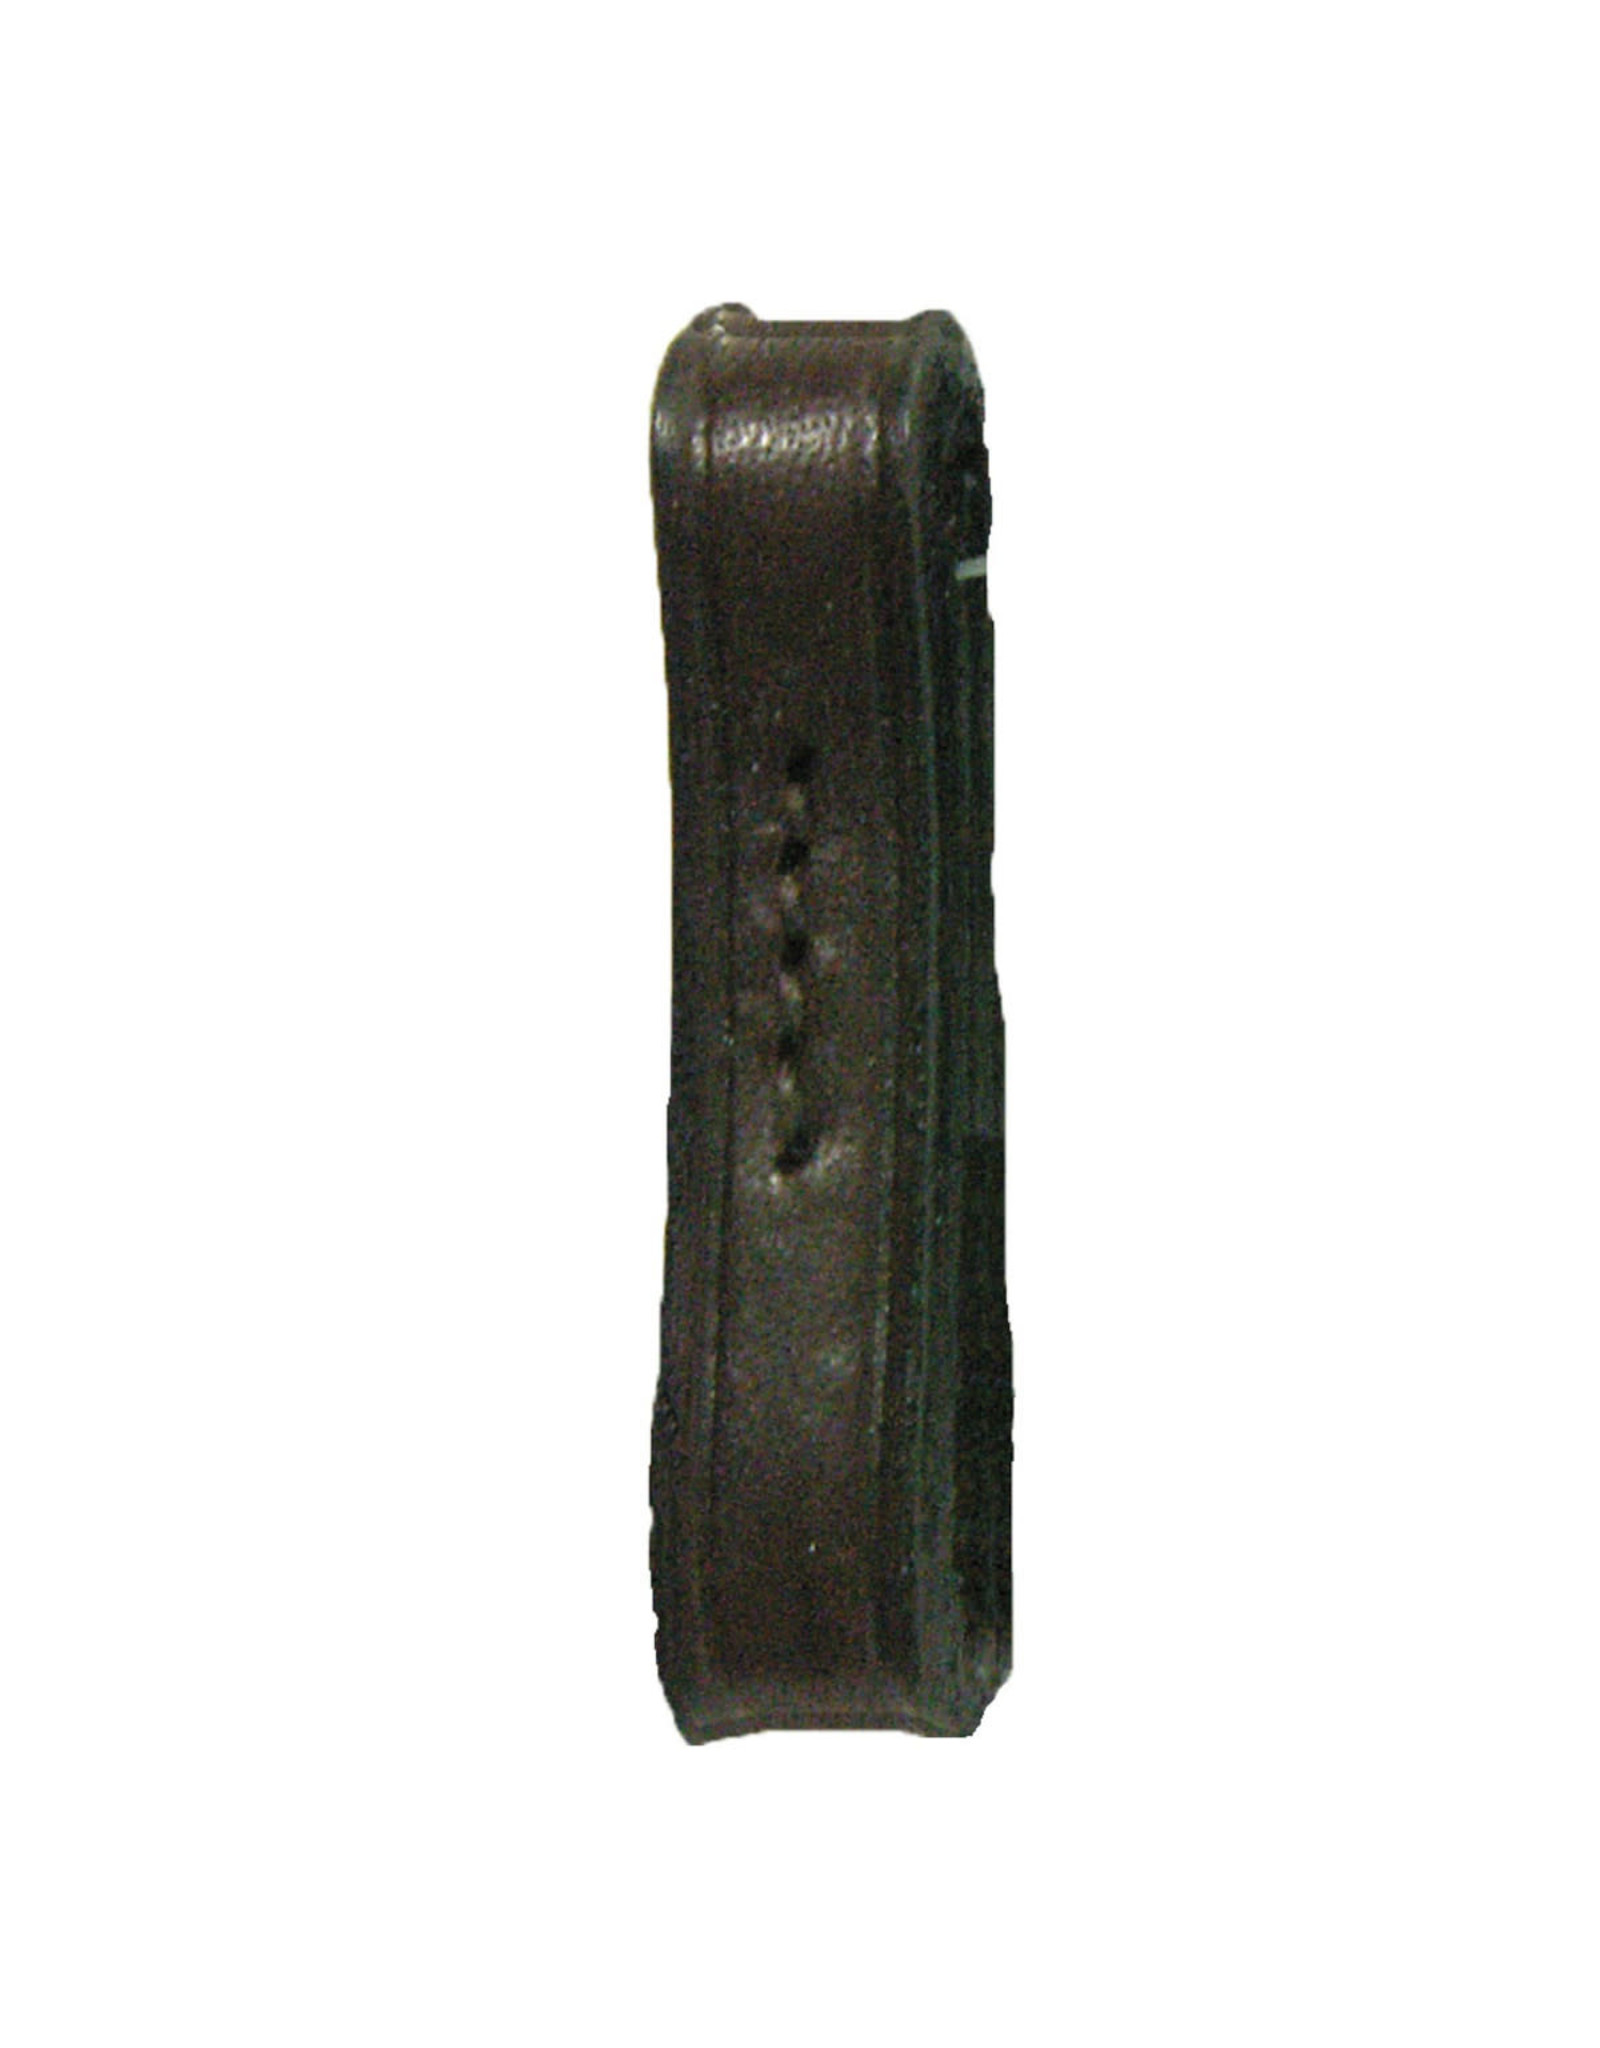 Leather Bit Loops or Bit Keepers